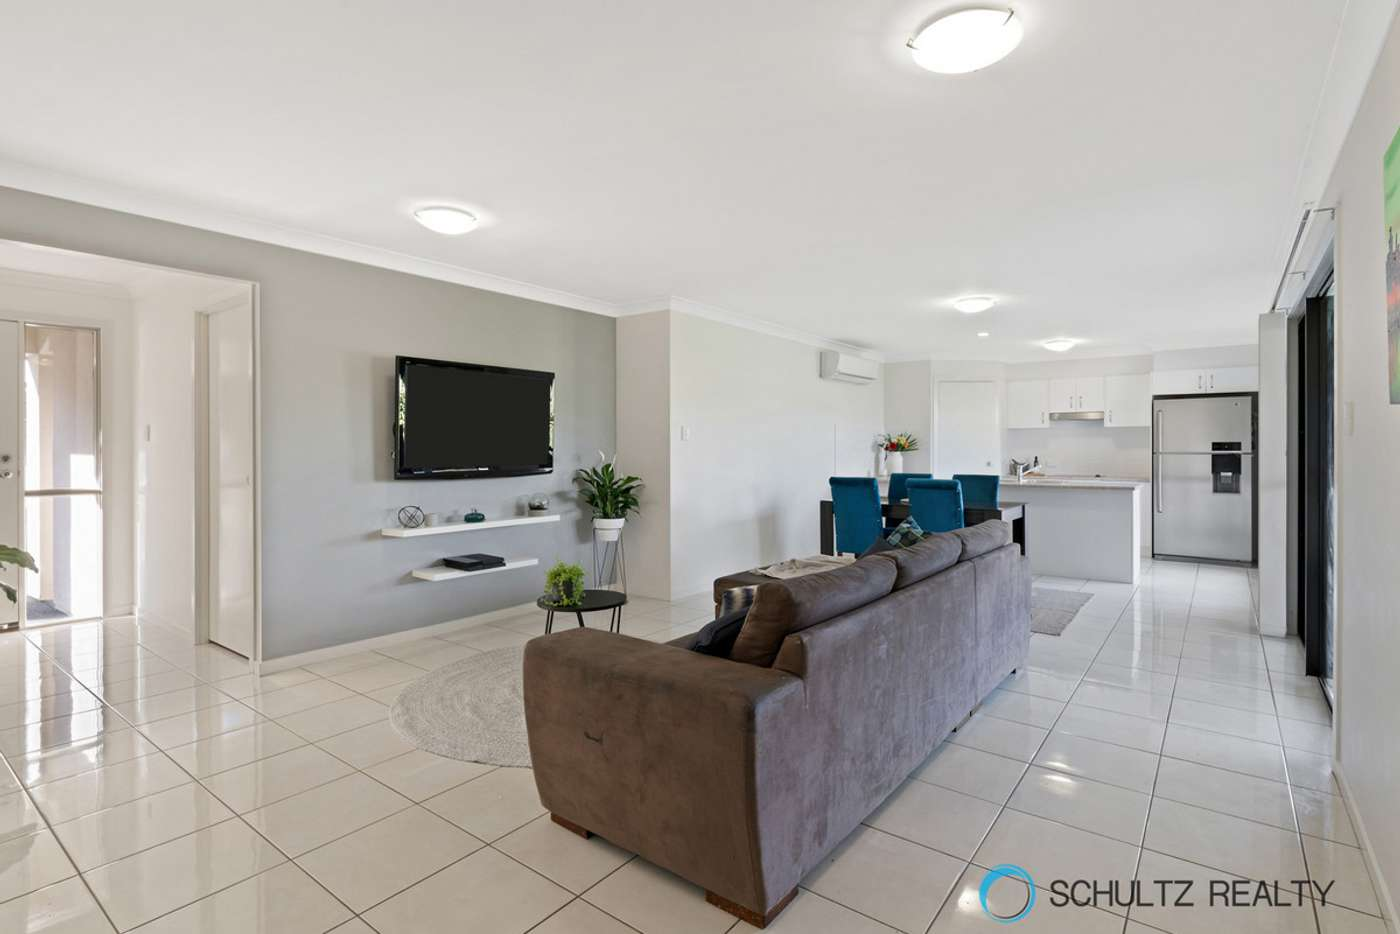 Fifth view of Homely house listing, 10 Vista Circuit, Bahrs Scrub QLD 4207